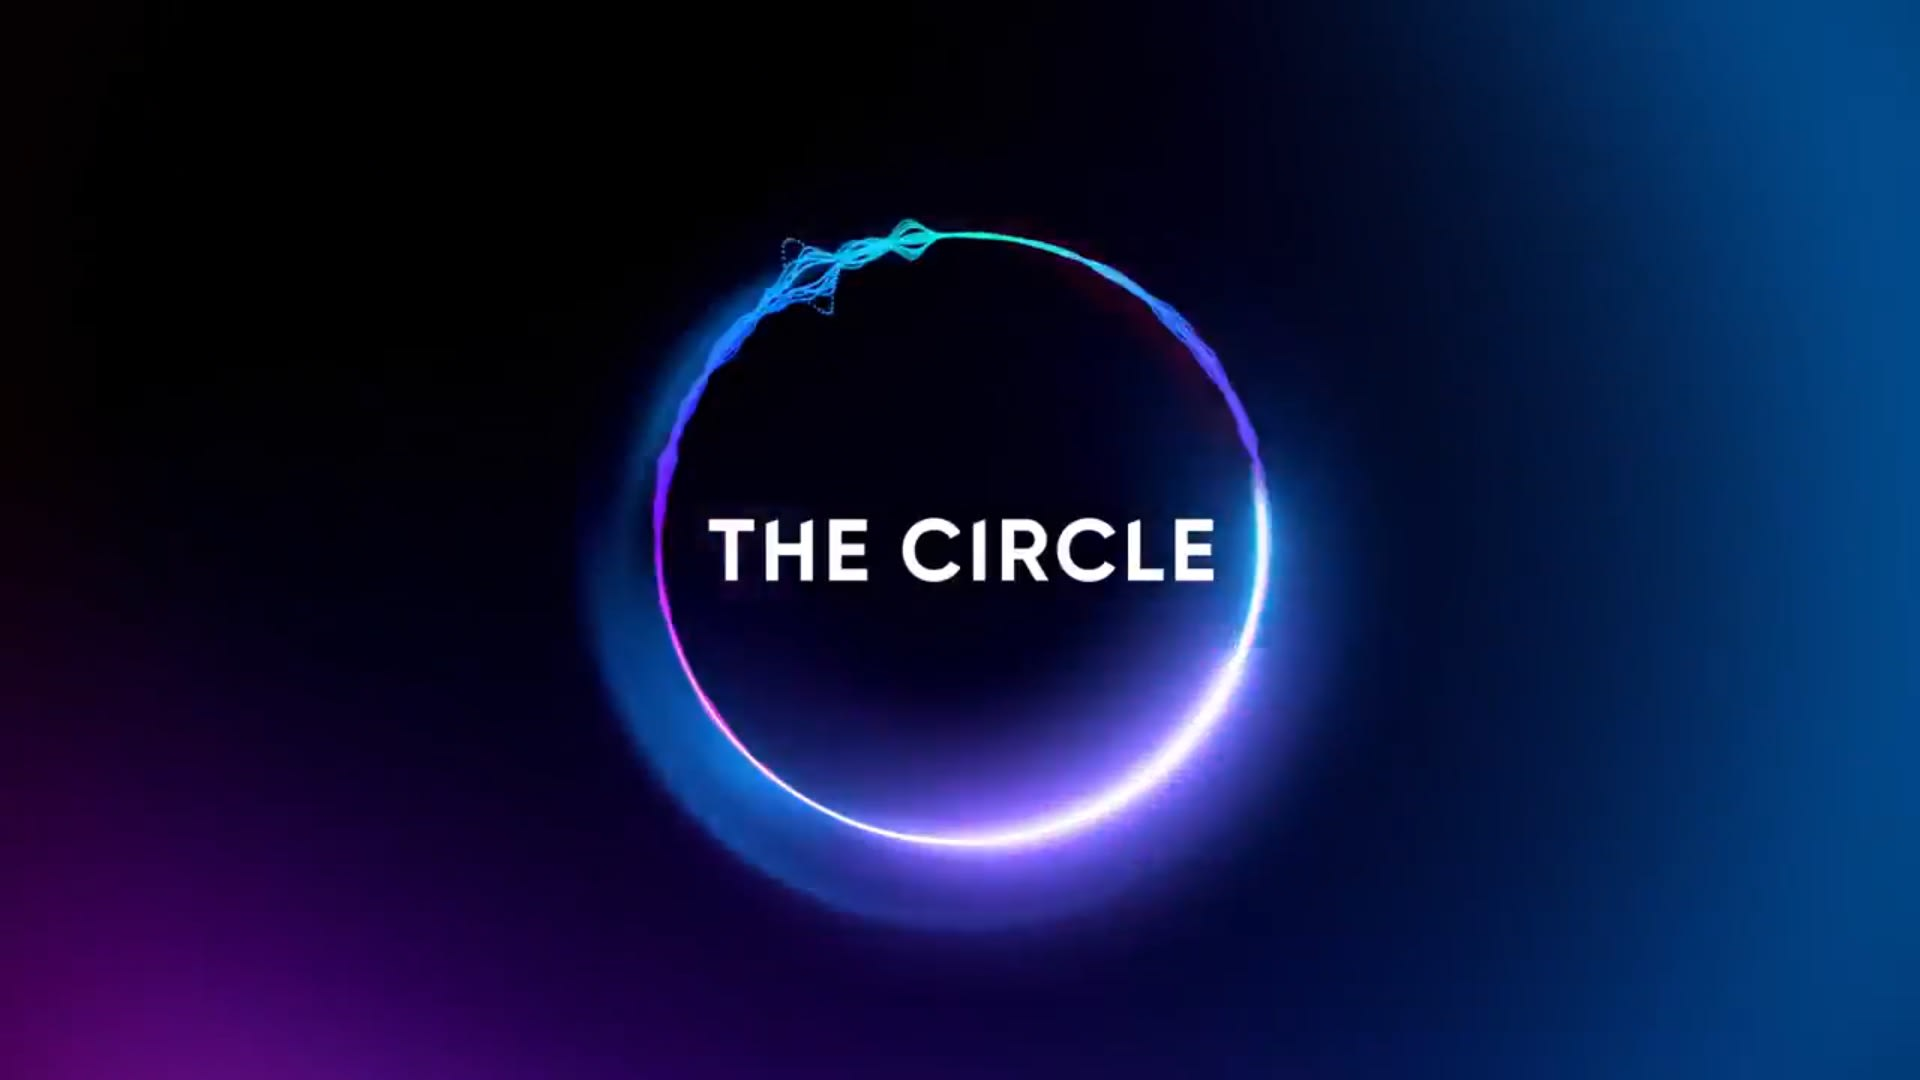 the circle logo wallpaper 70275